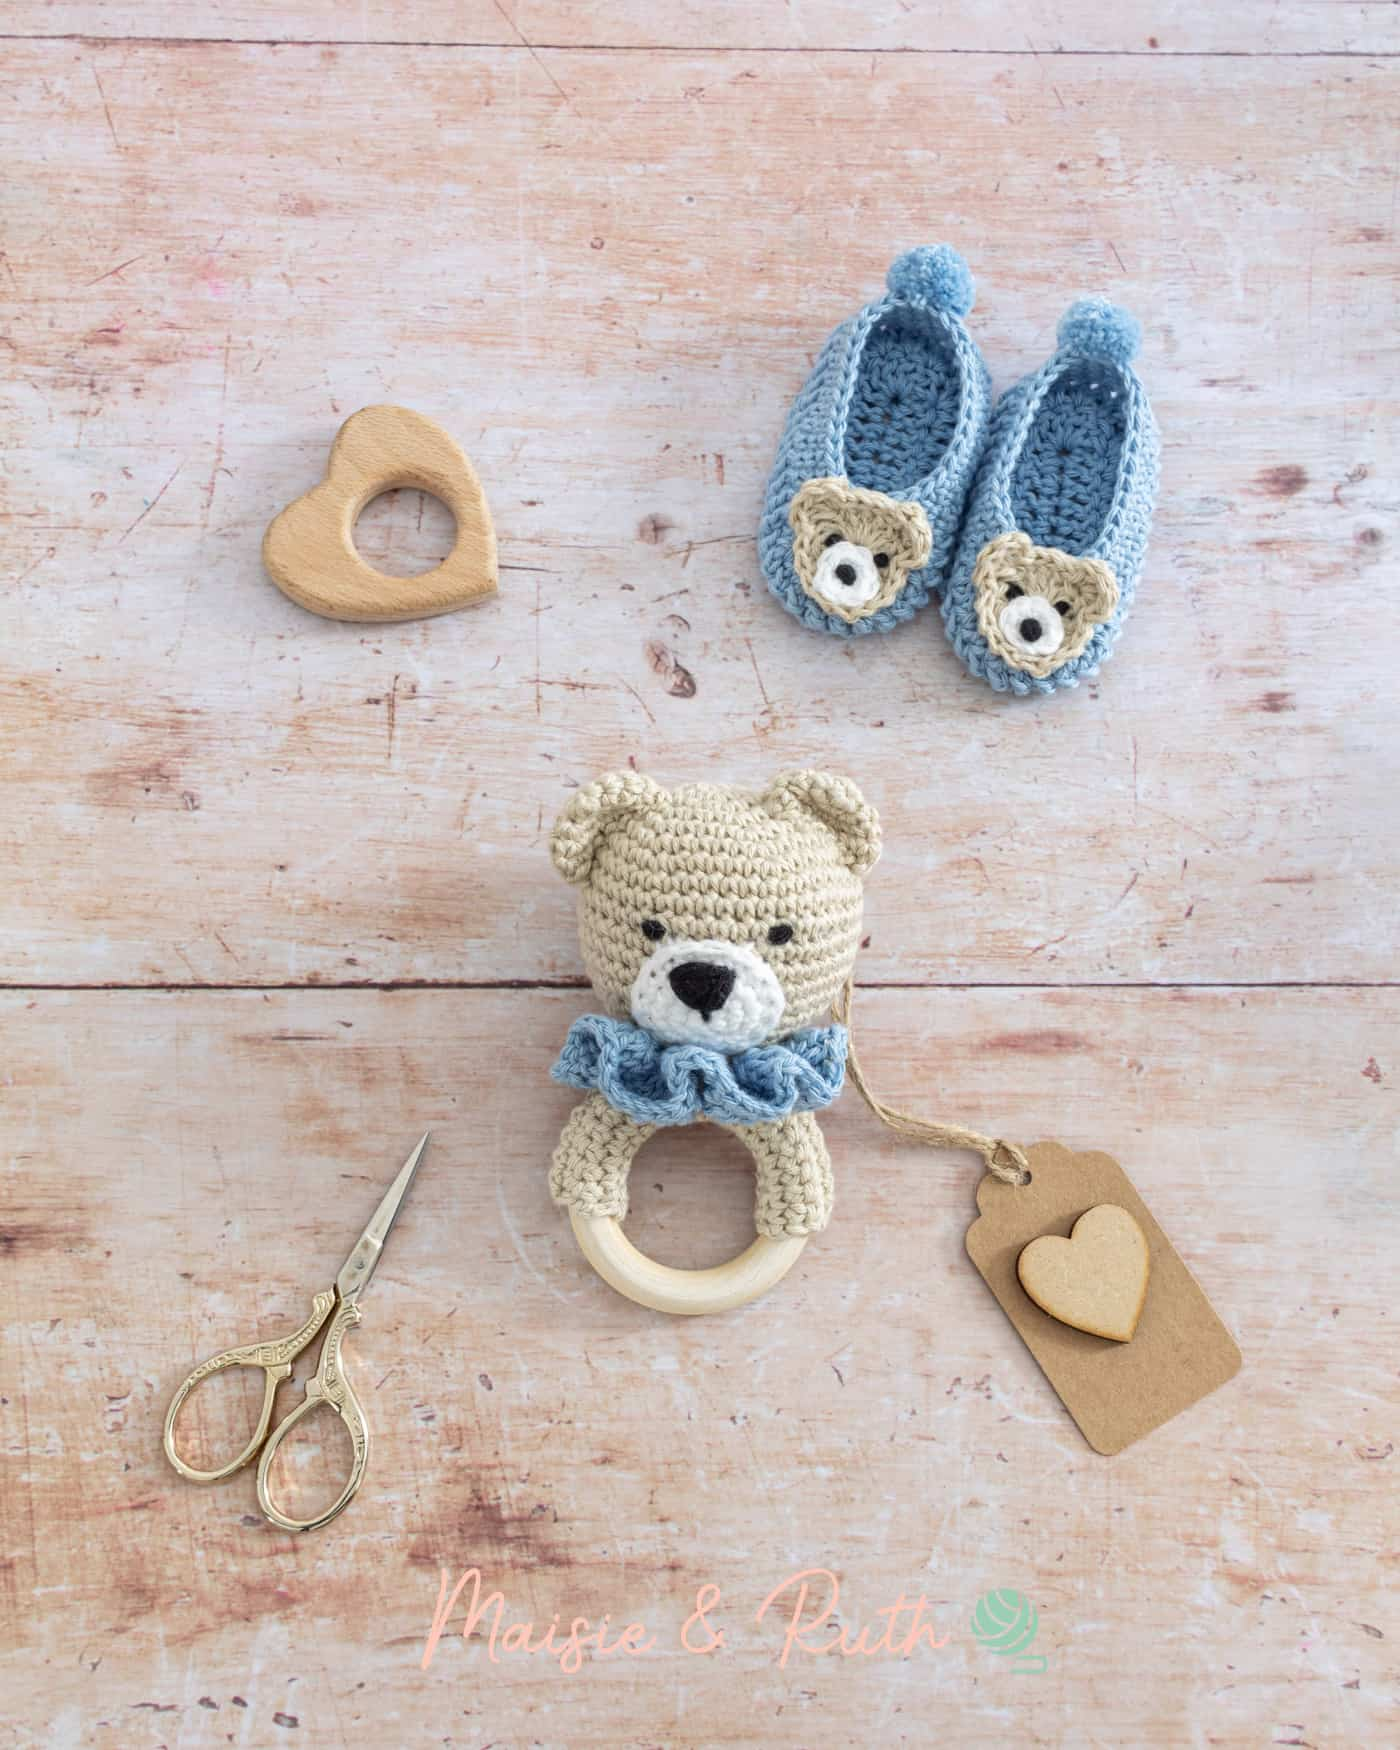 How to Crochet a Baby Rattle with props